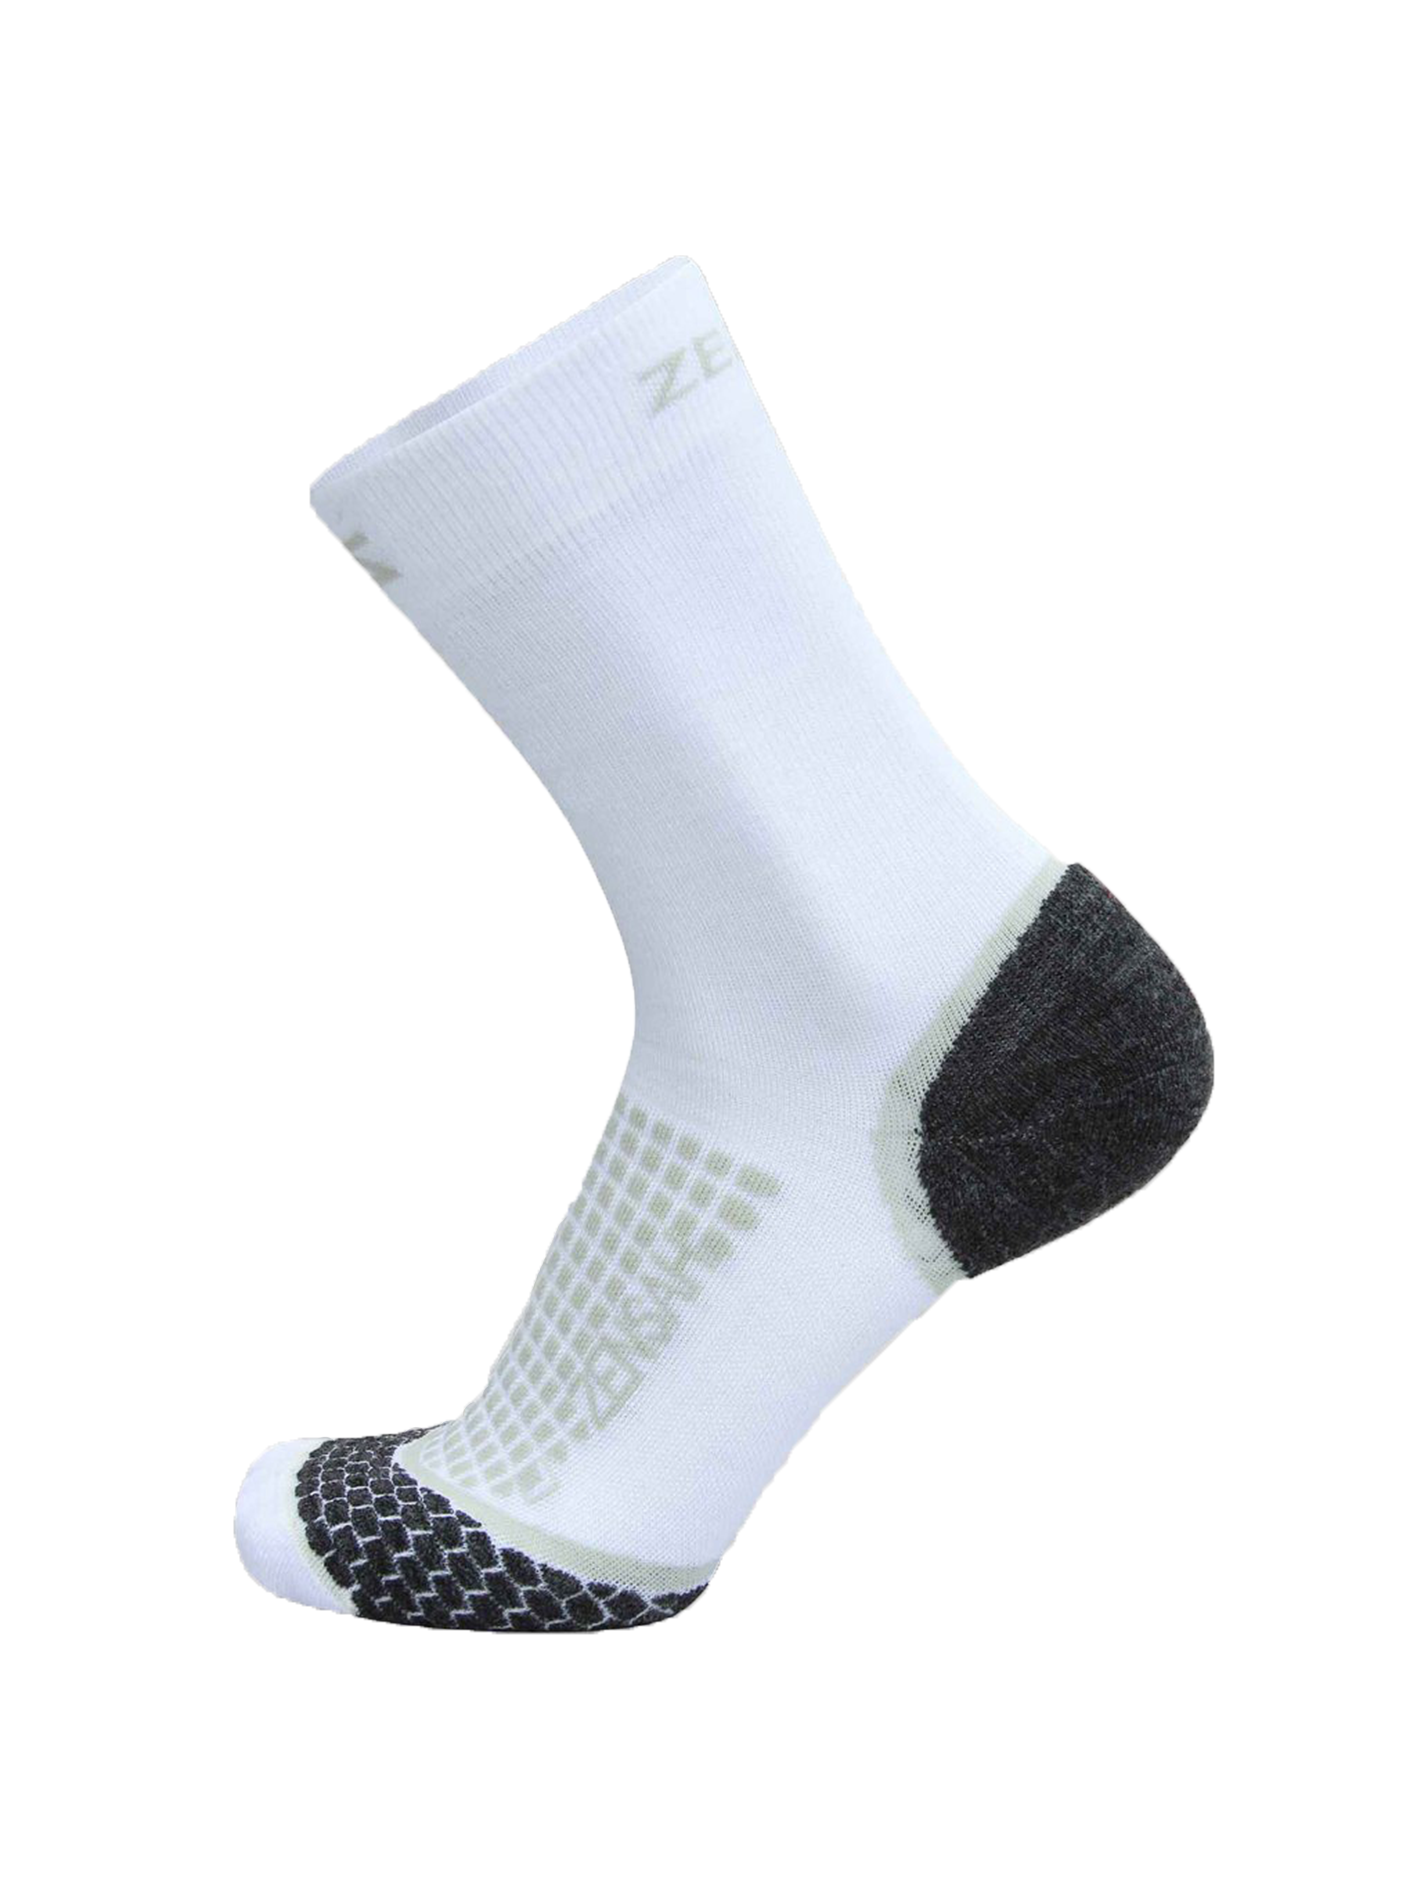 Grit Running Socks (Crew) - White